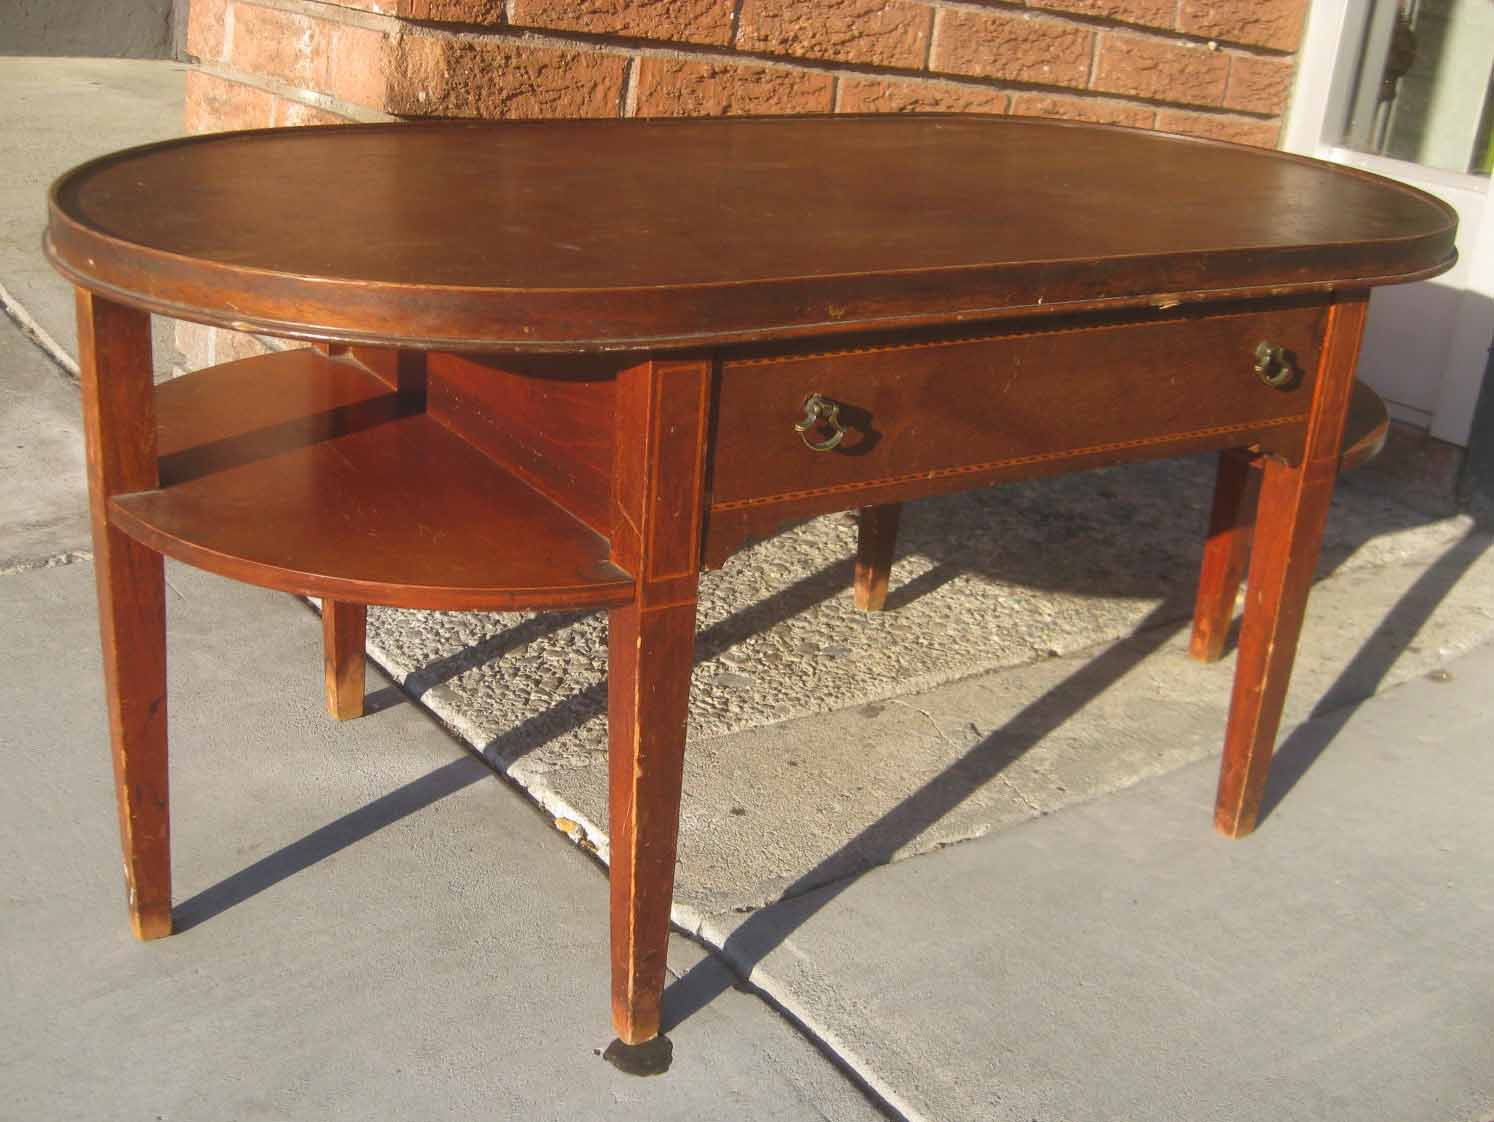 Uhuru furniture collectibles sold cute old coffee for Cute coffee tables